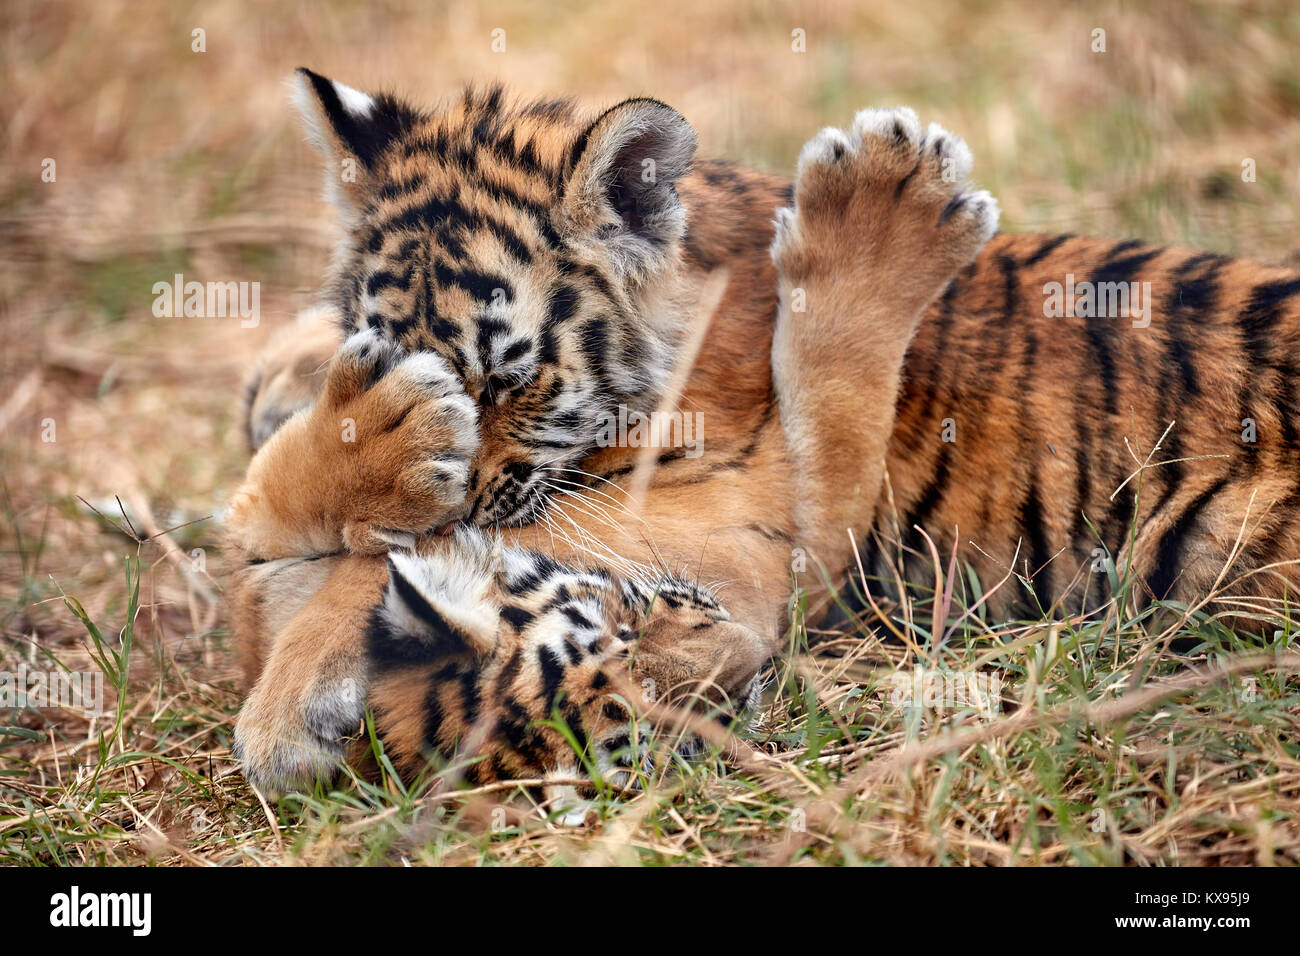 Cute little Tiger cubs playing in the grass Stock Photo